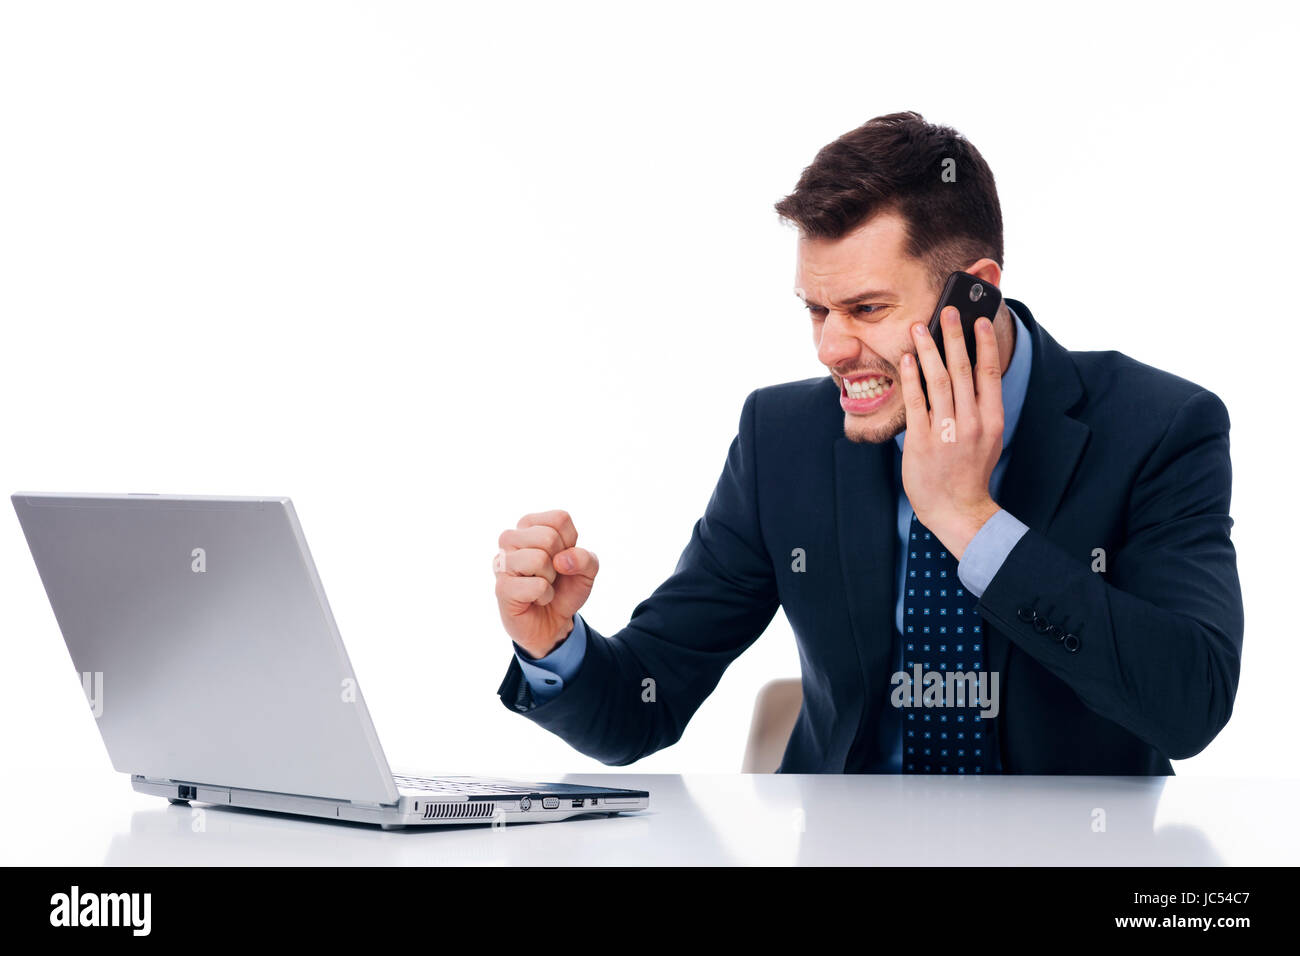 Stressful work in the office - Stock Image